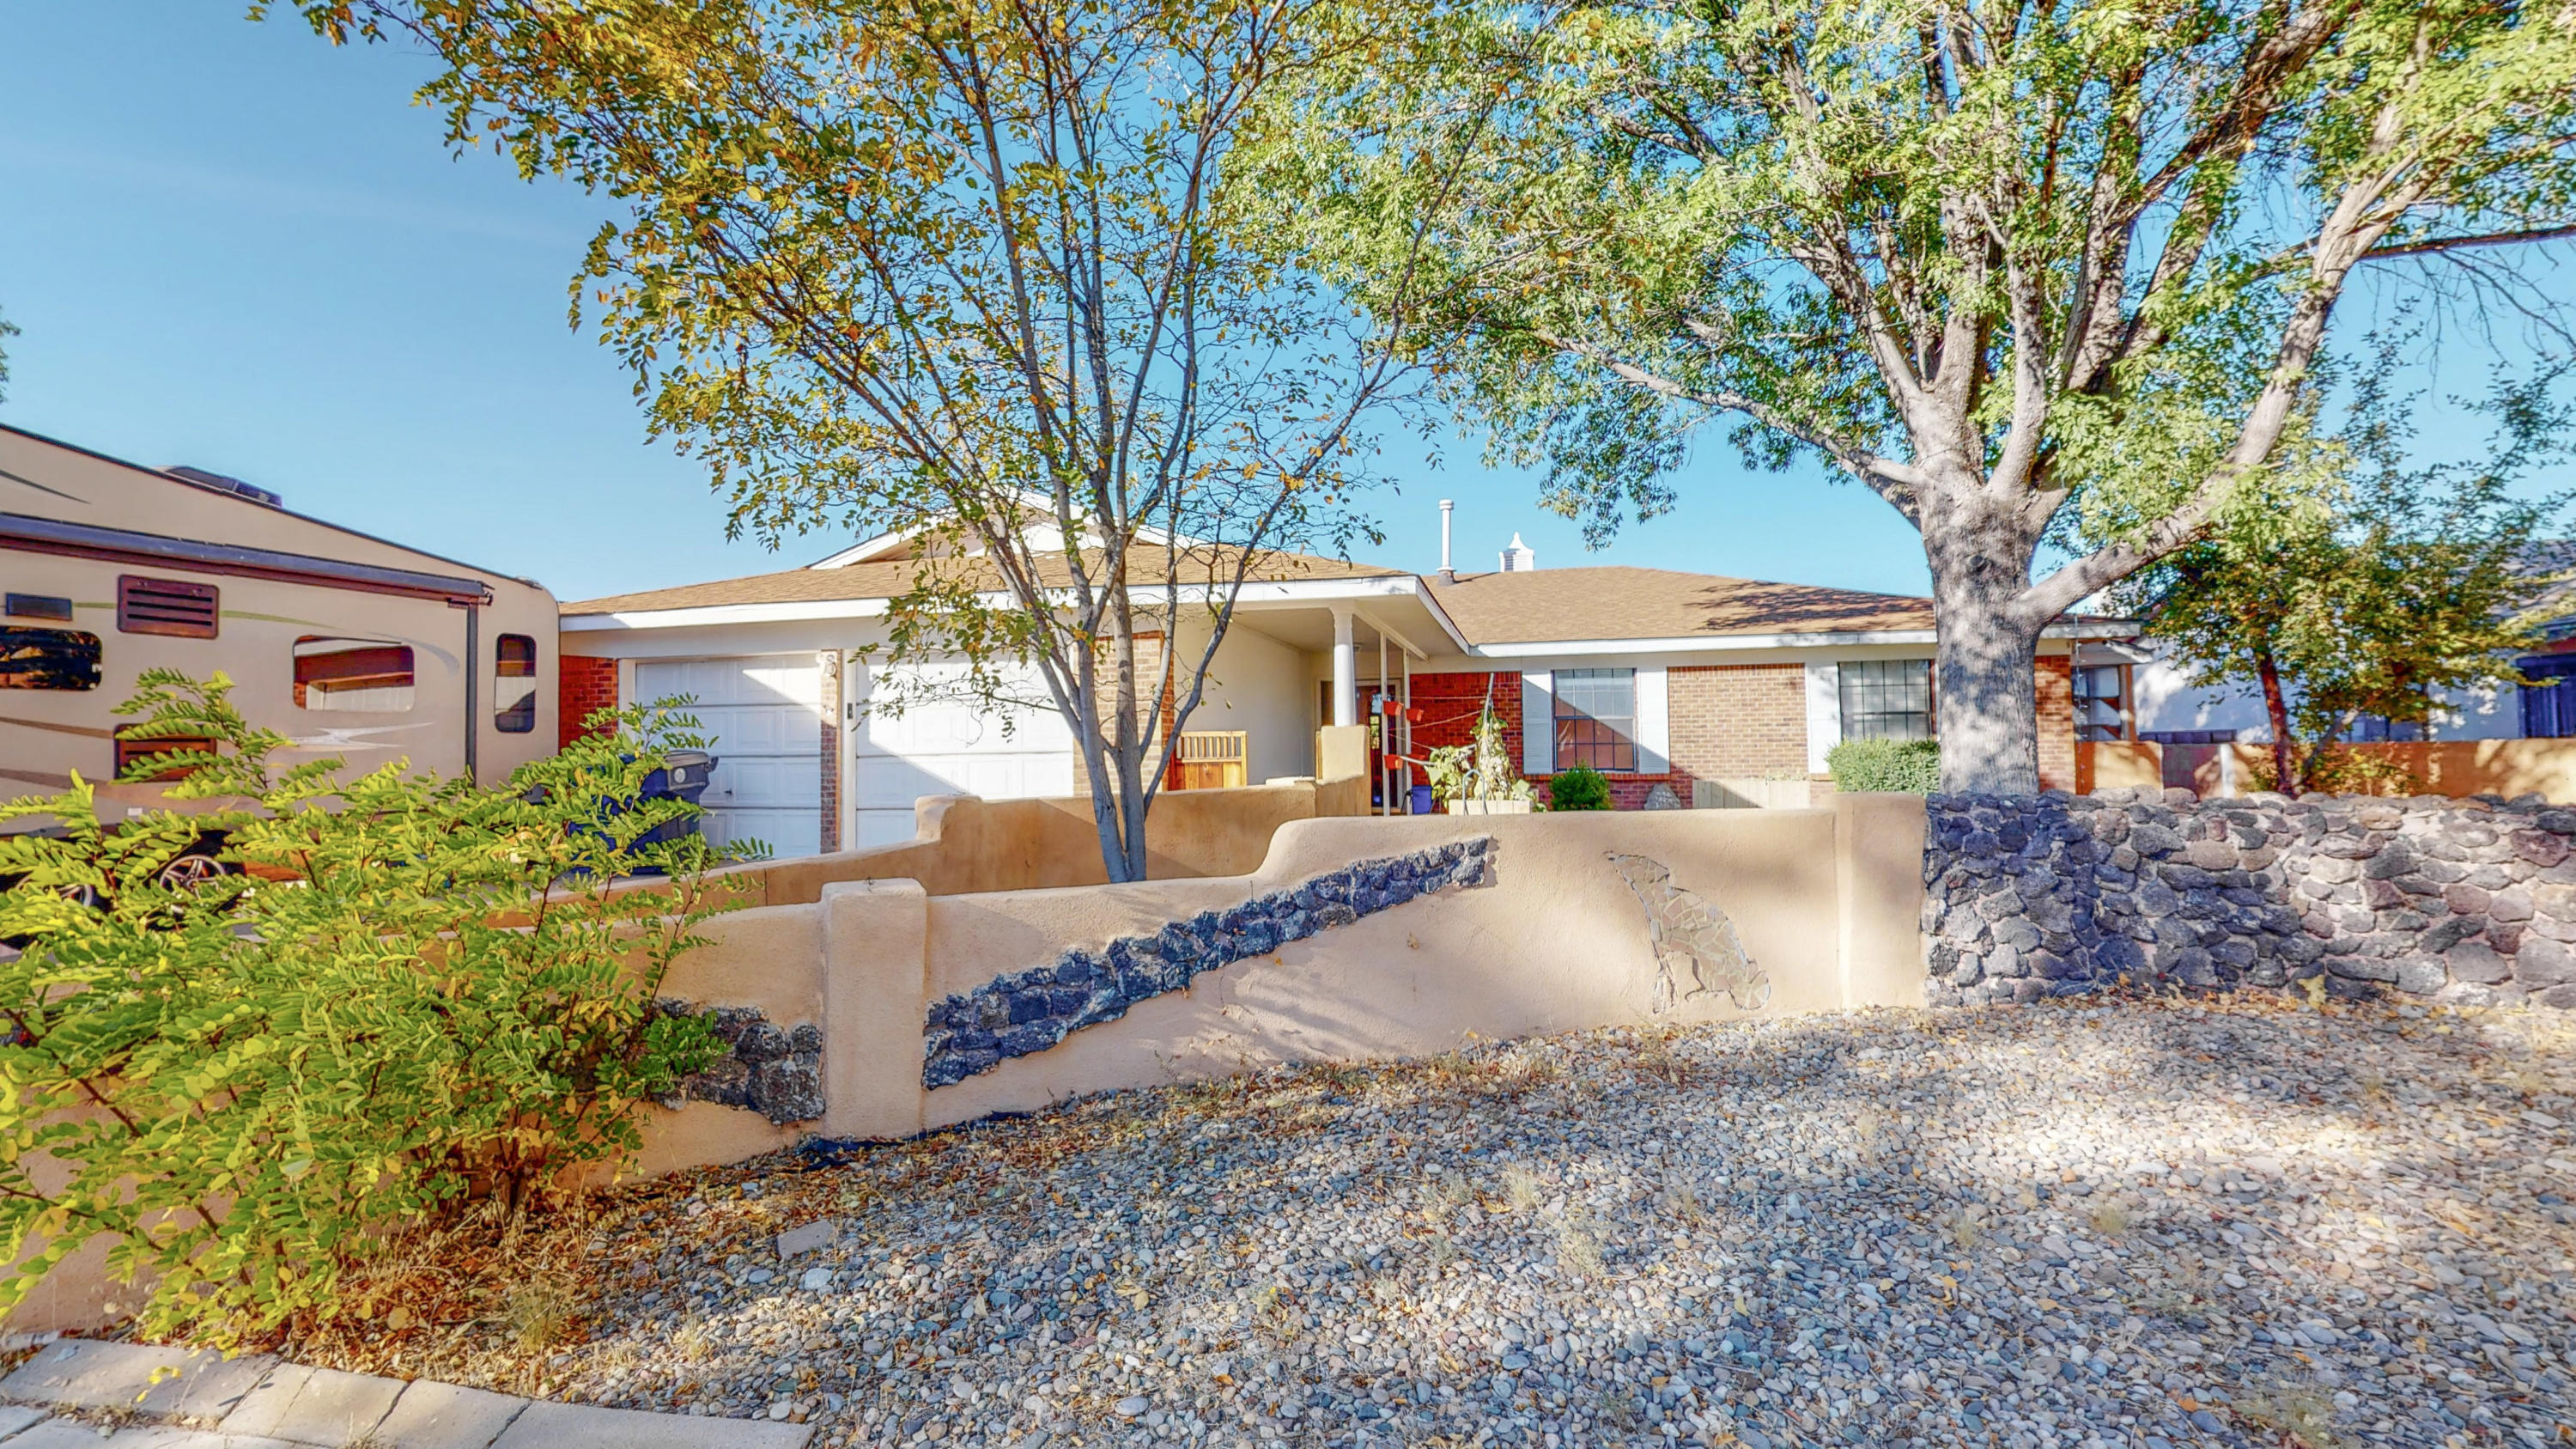 This charming 3 bedroom, 2 bath home with plenty of storage is ready for new owners! Tucked away in the desirable Taylor Ranch neighborhood.  This home features a brick exterior and a grass front and backyard with ample room for your garden. Don't forget to relax in the hot tub on chilly New Mexico nights! Enjoy meals in the cozy breakfast nook. Further updates include a new furnace and refrigerated air unit as well as a new water heater. Roof is only 7 years old! Close by grocery stores, shopping, and restaurants. Schedule your showing today!